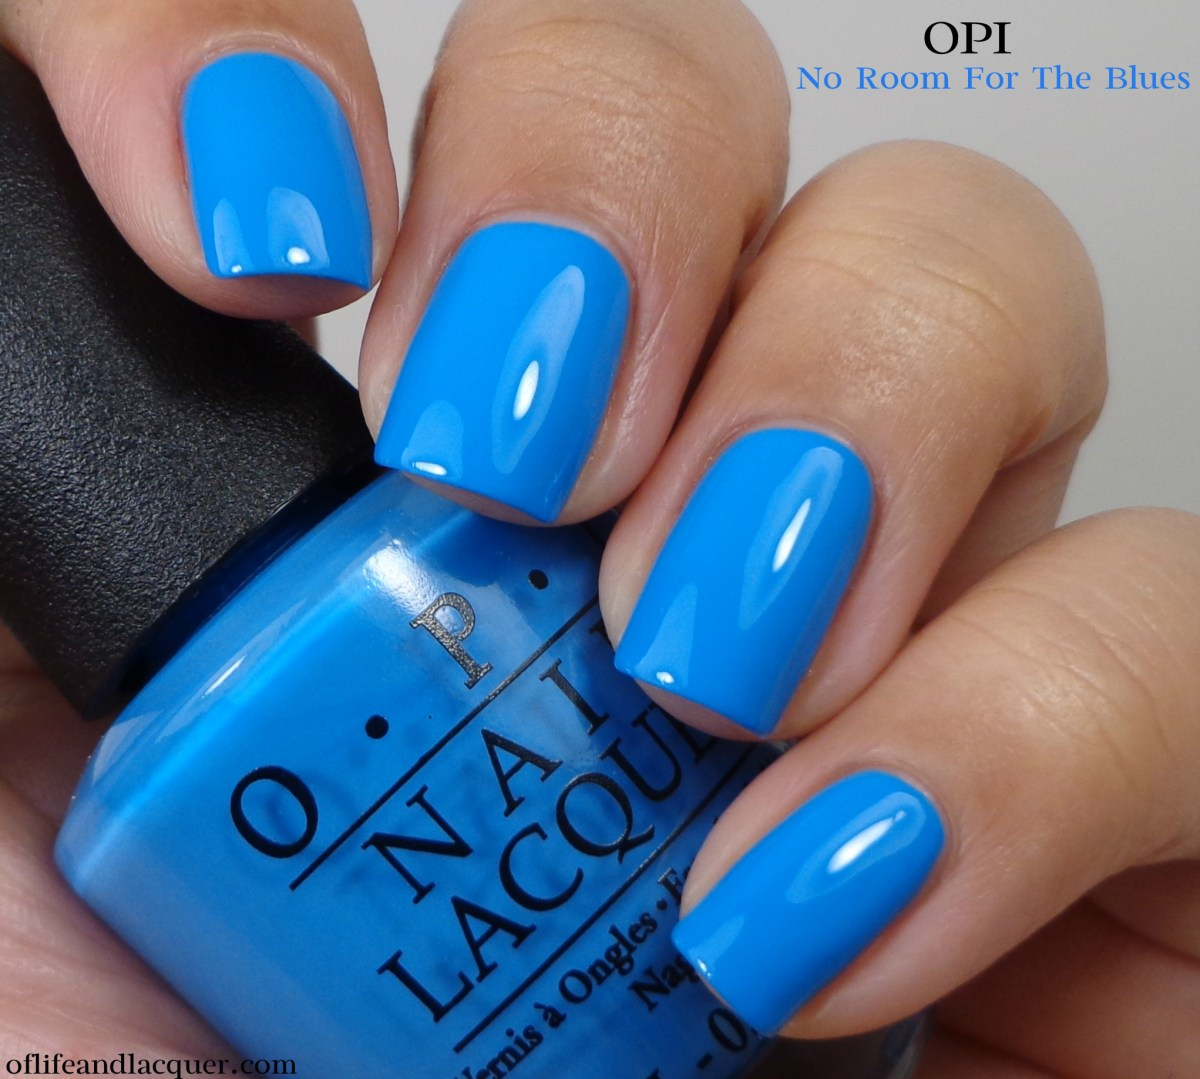 OPI No Room For The Blues...Cause I'm Feeling Blue